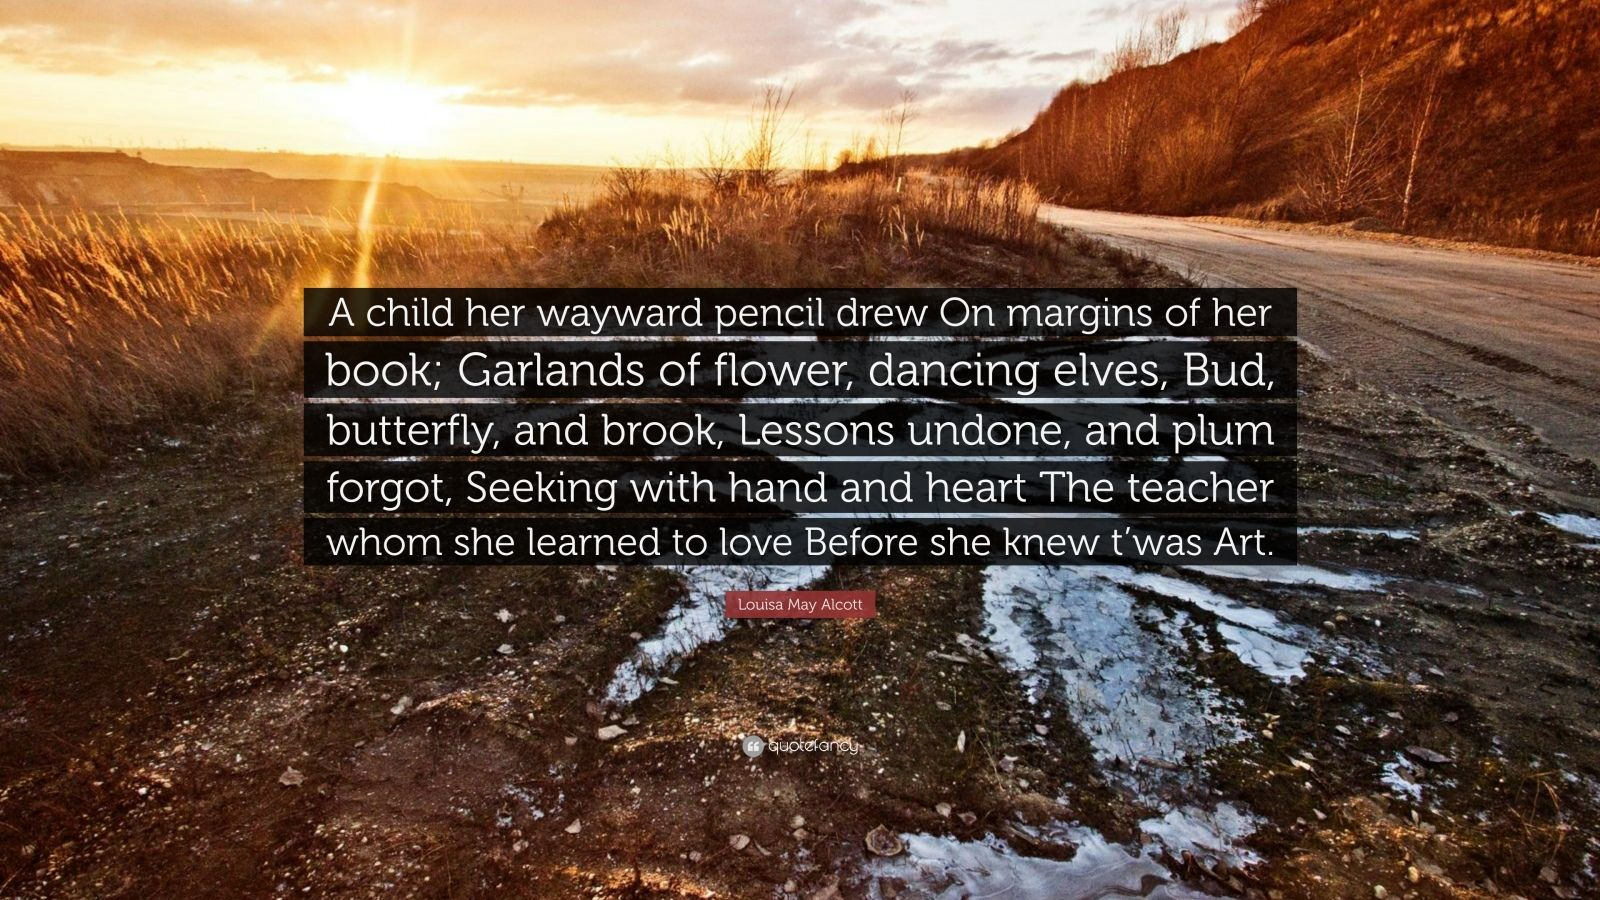 "Louisa May Alcott Quote: ""A child her wayward pencil drew On margins of her book; Garlands of flower, dancing elves, Bud, butterfly, and brook, Lessons undone, and plum forgot, Seeking with hand and heart The teacher whom she learned to love Before she knew t'was Art."""